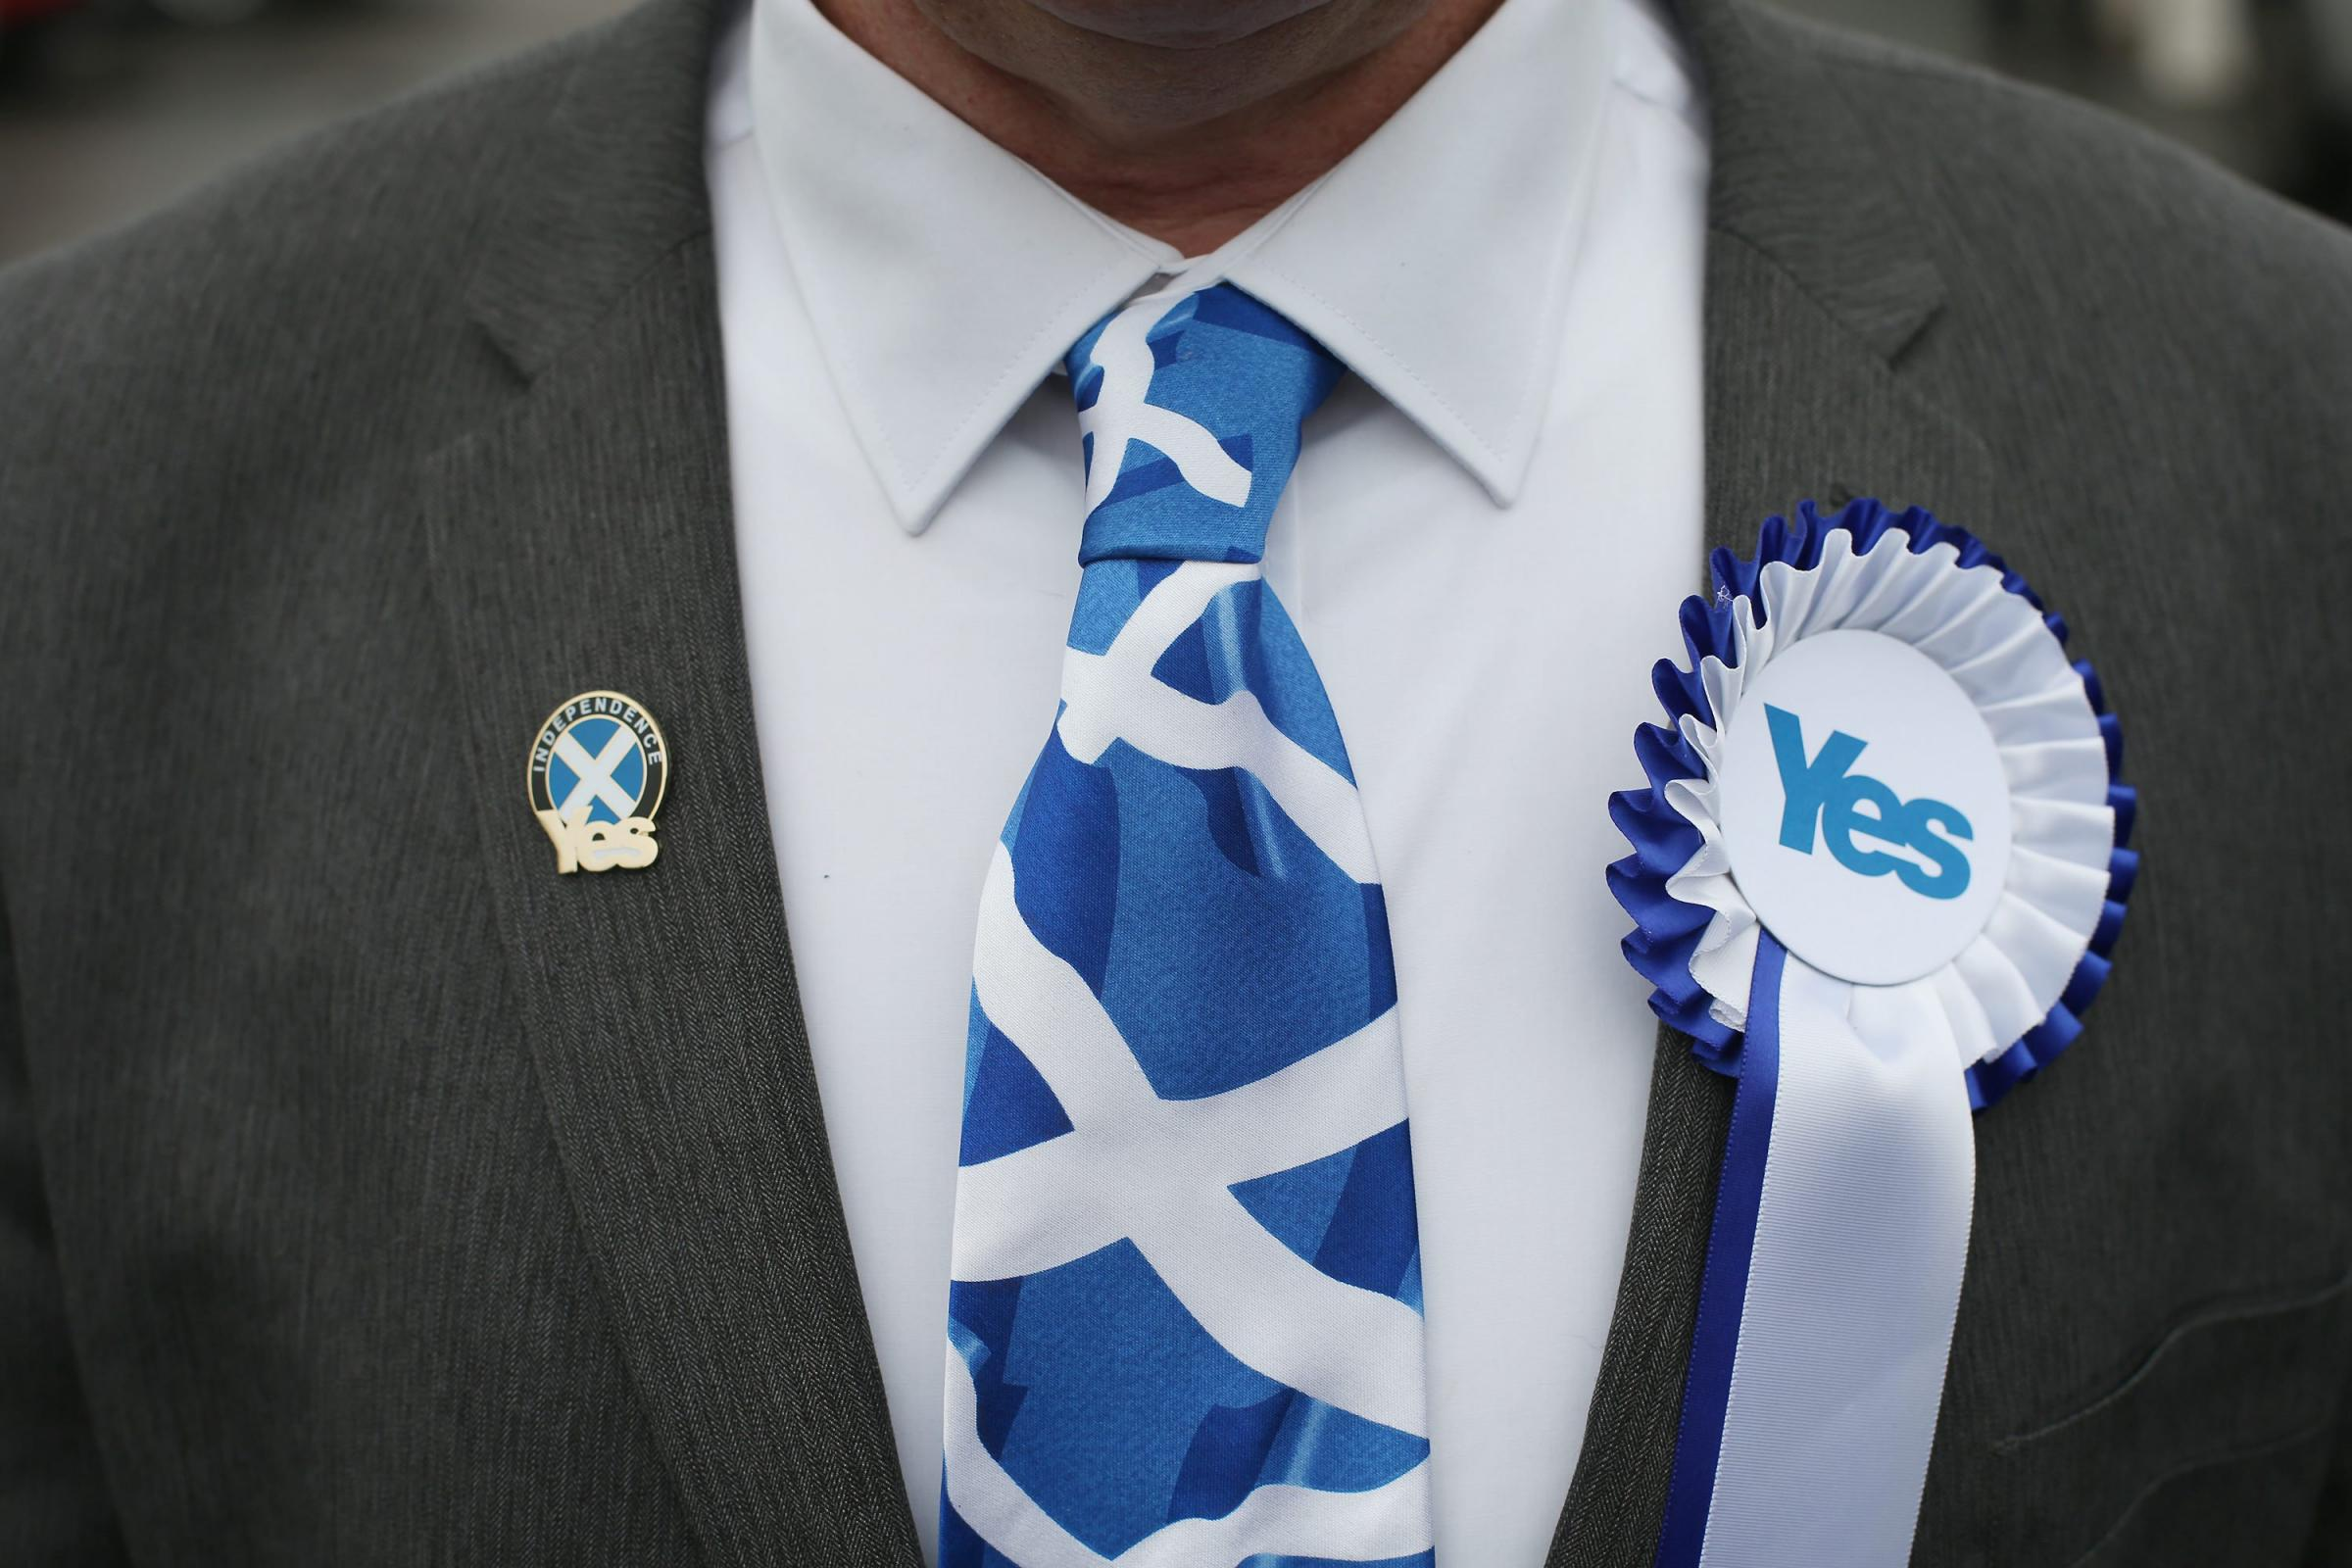 Winning over voters not born in Scotland could provide a big boost to the Yes vote in indyref2